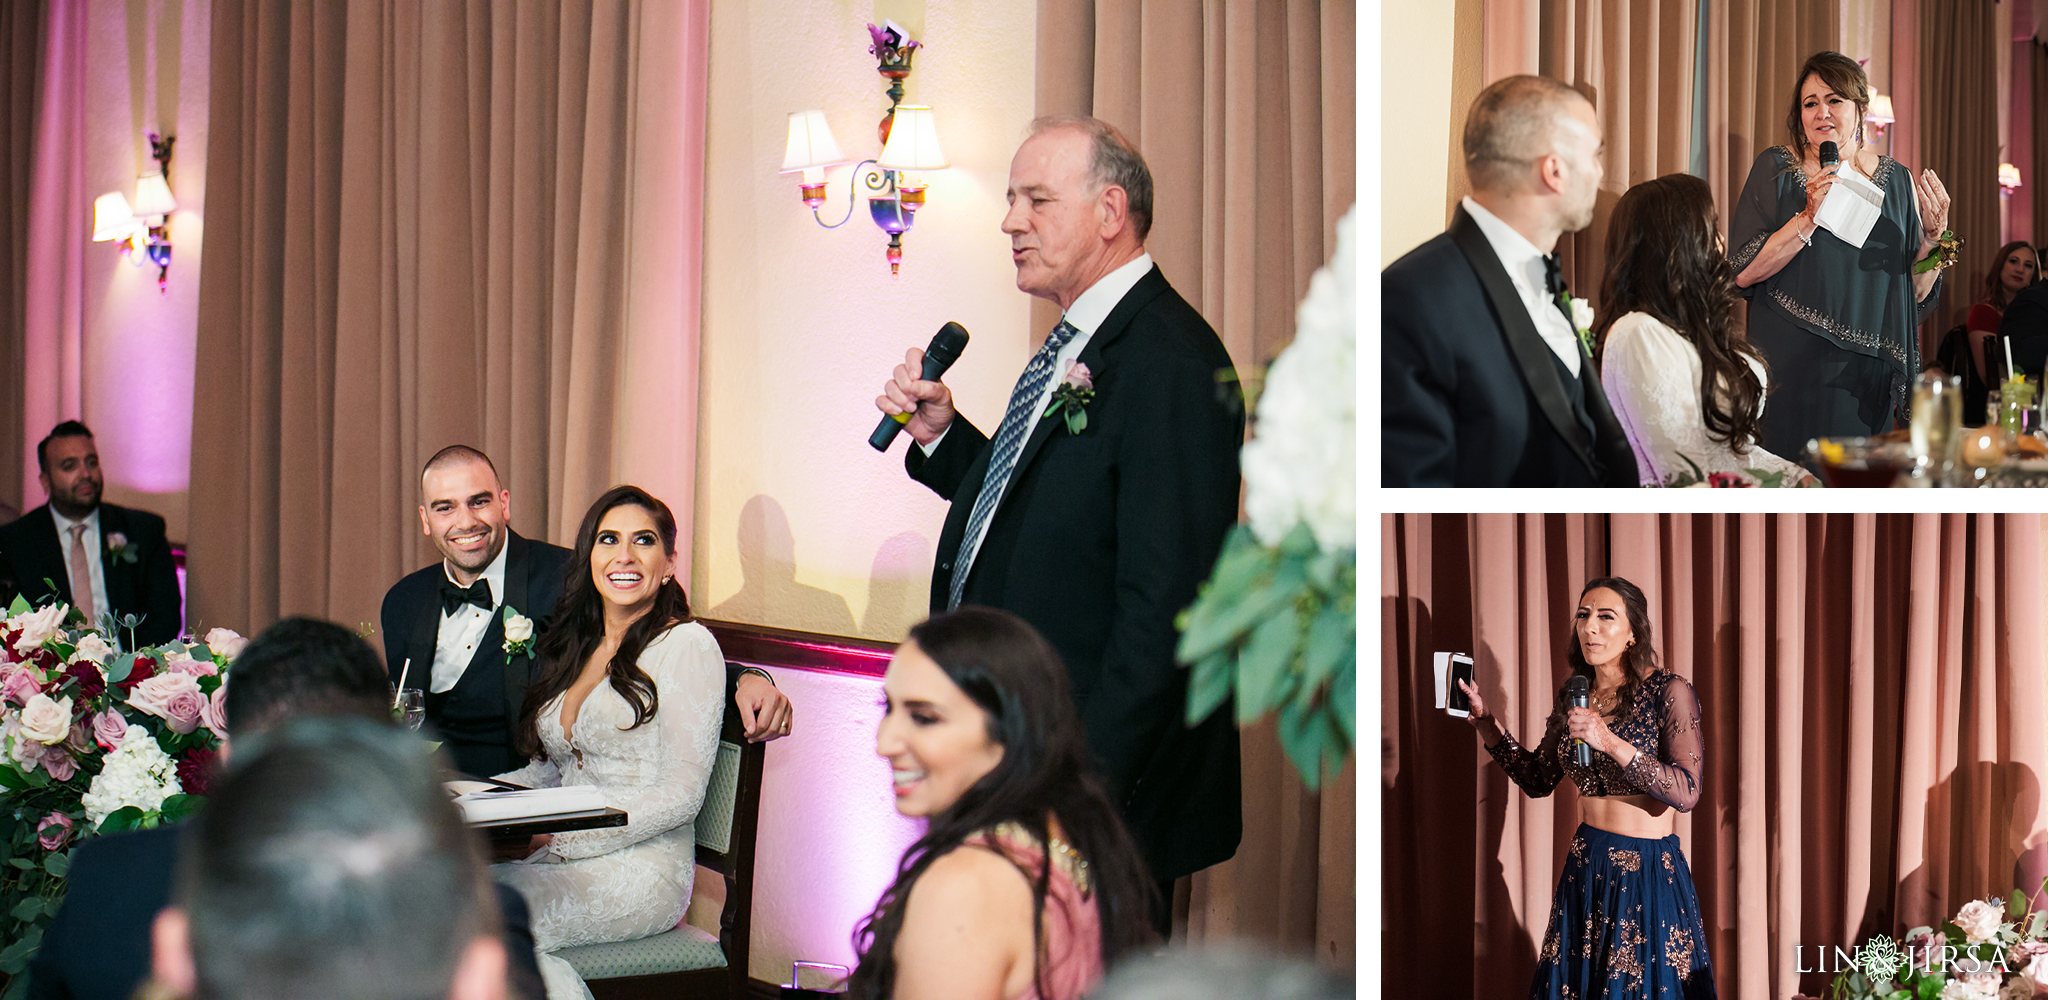 45 The Ebell Los Angeles Multicultural Wedding Photography